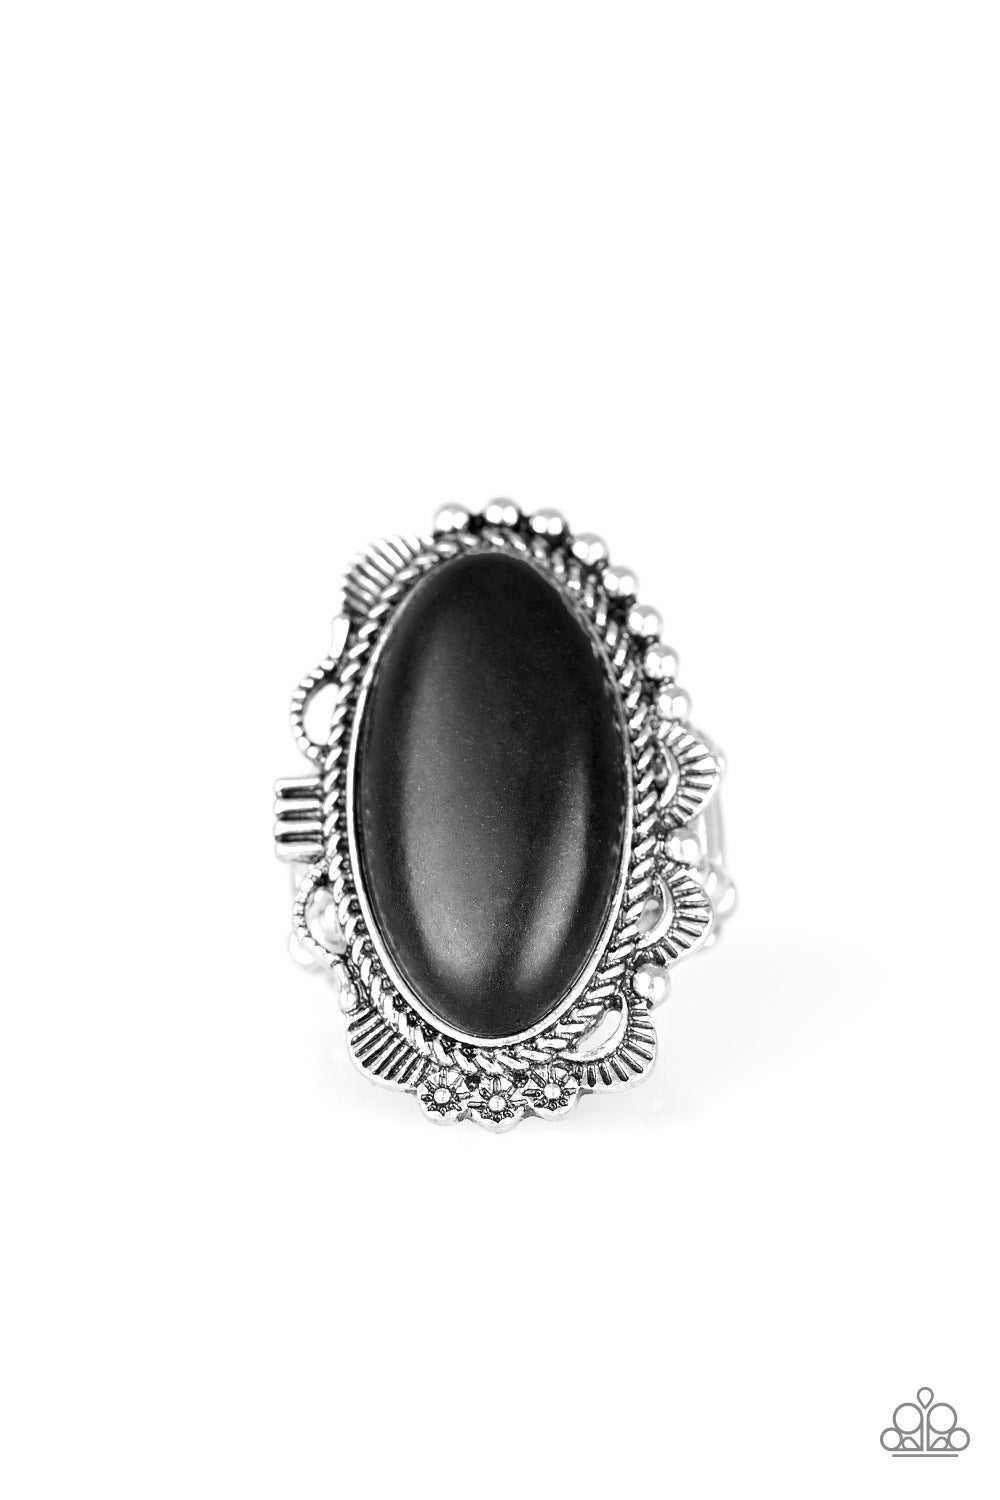 five-dollar-jewelry-open-range-black-ring-paparazzi-accessories